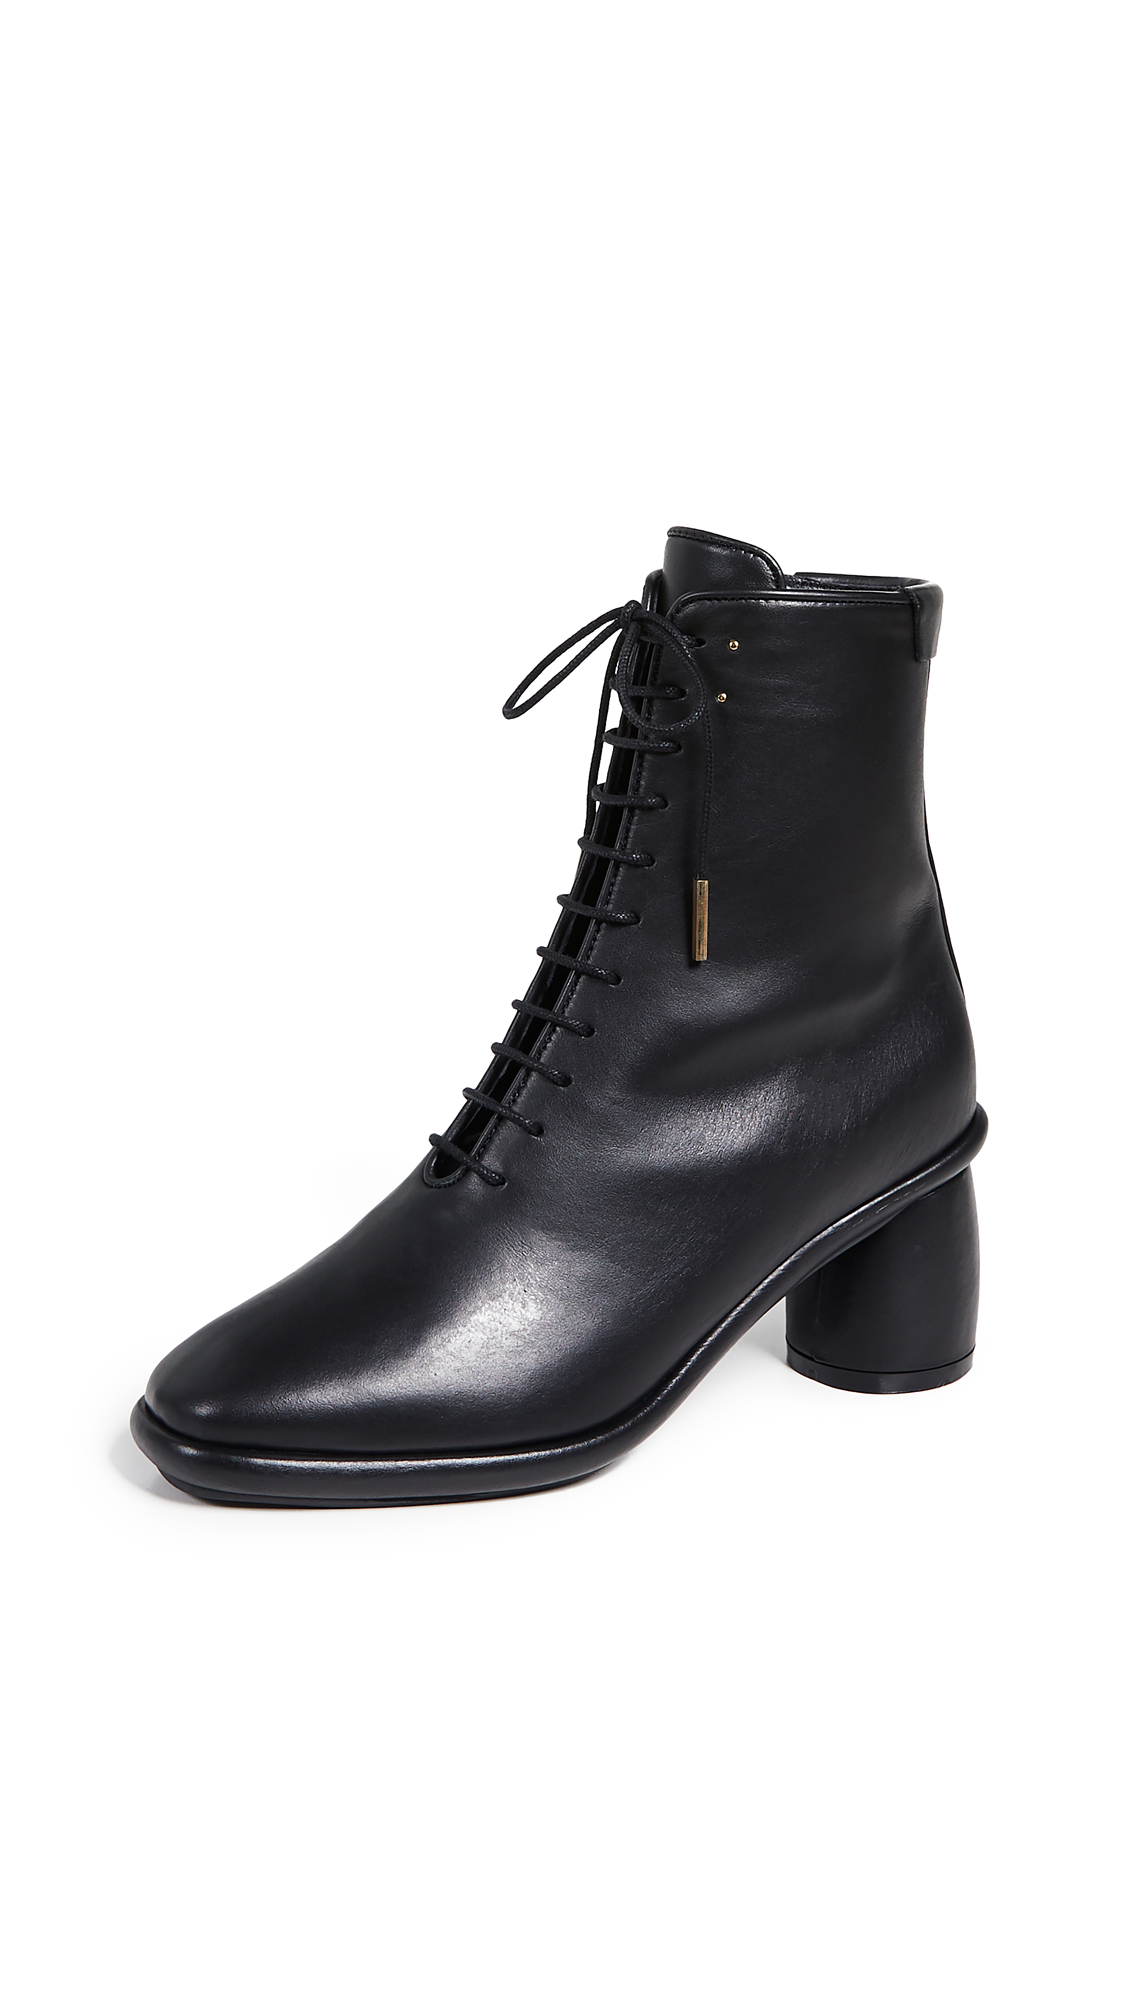 Reike Nen Plain Middle Lace-up Boot - Black